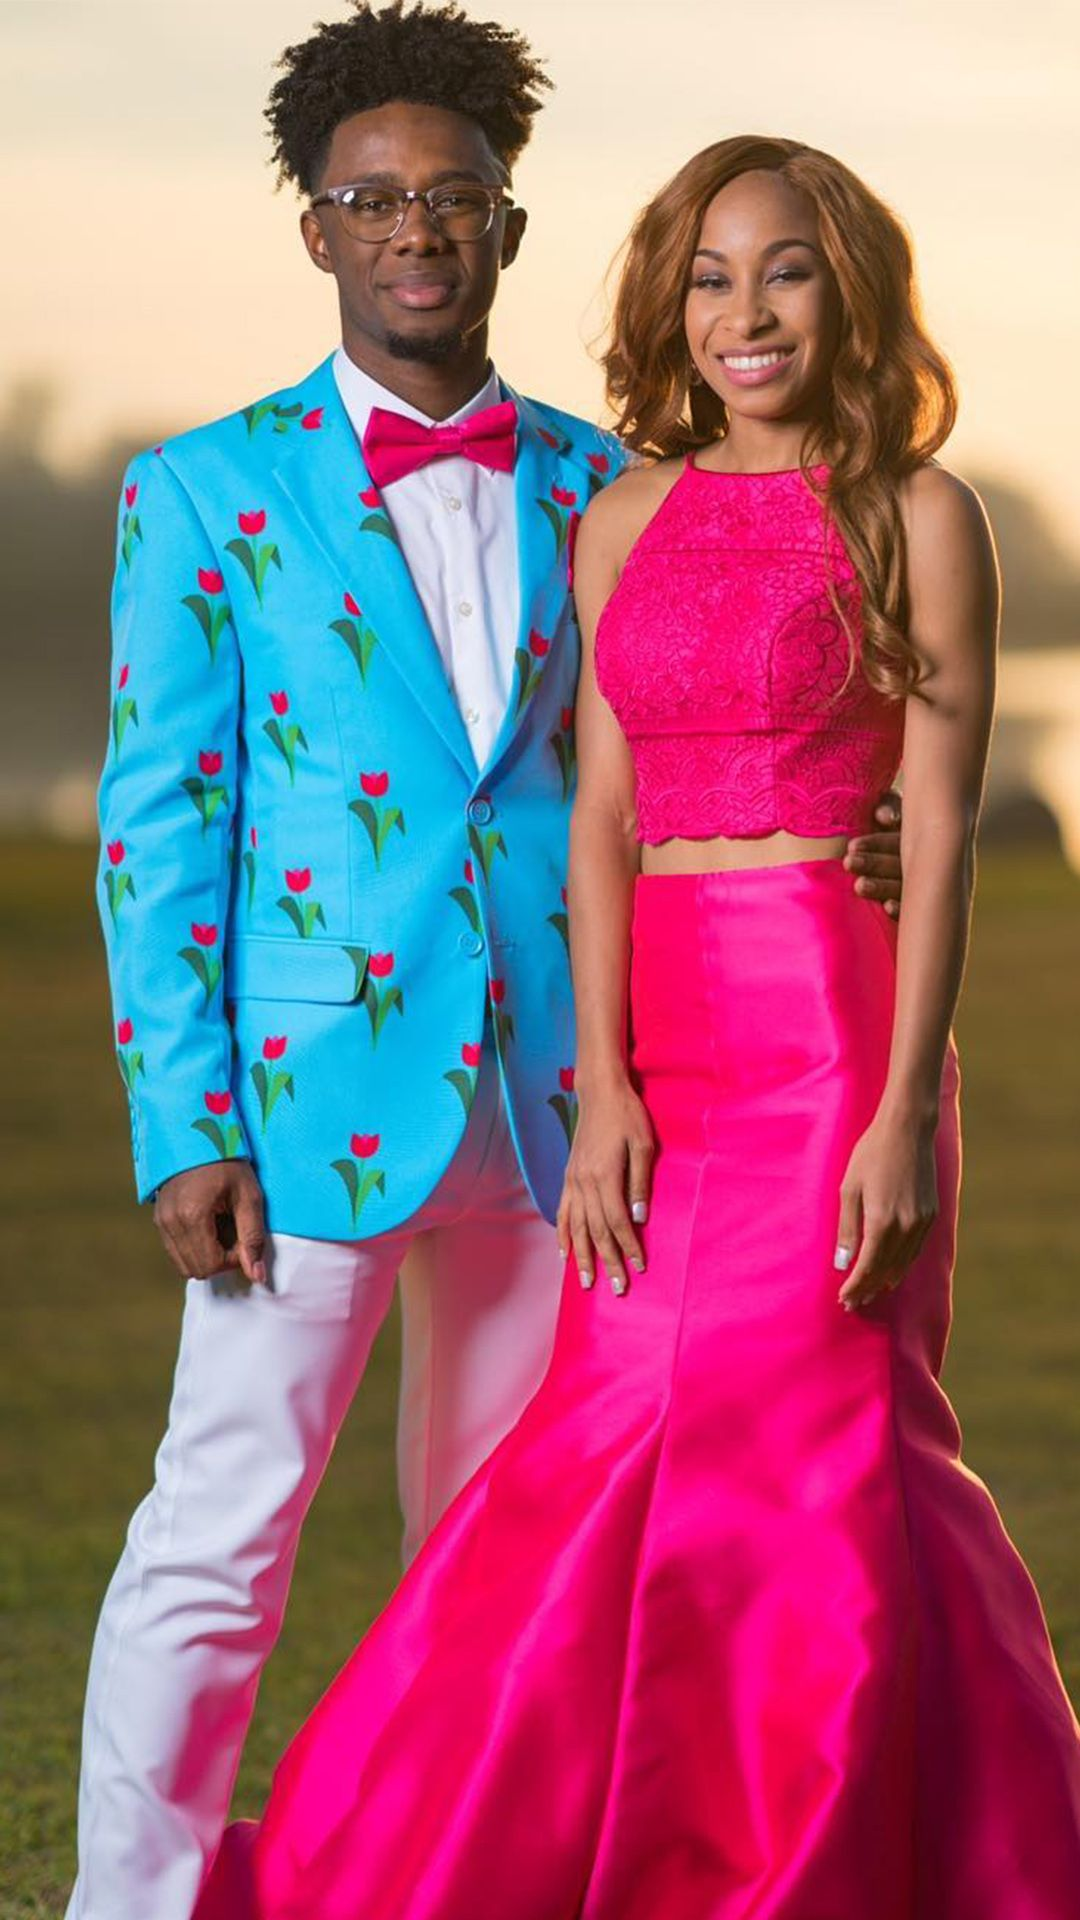 Prom Couple Outfits Prom Dress Prom Suits For Men Original Suit For Prom And Homecoming Best Su Homecoming Outfits For Guys Prom Outfits Homecoming Outfits [ 1920 x 1080 Pixel ]